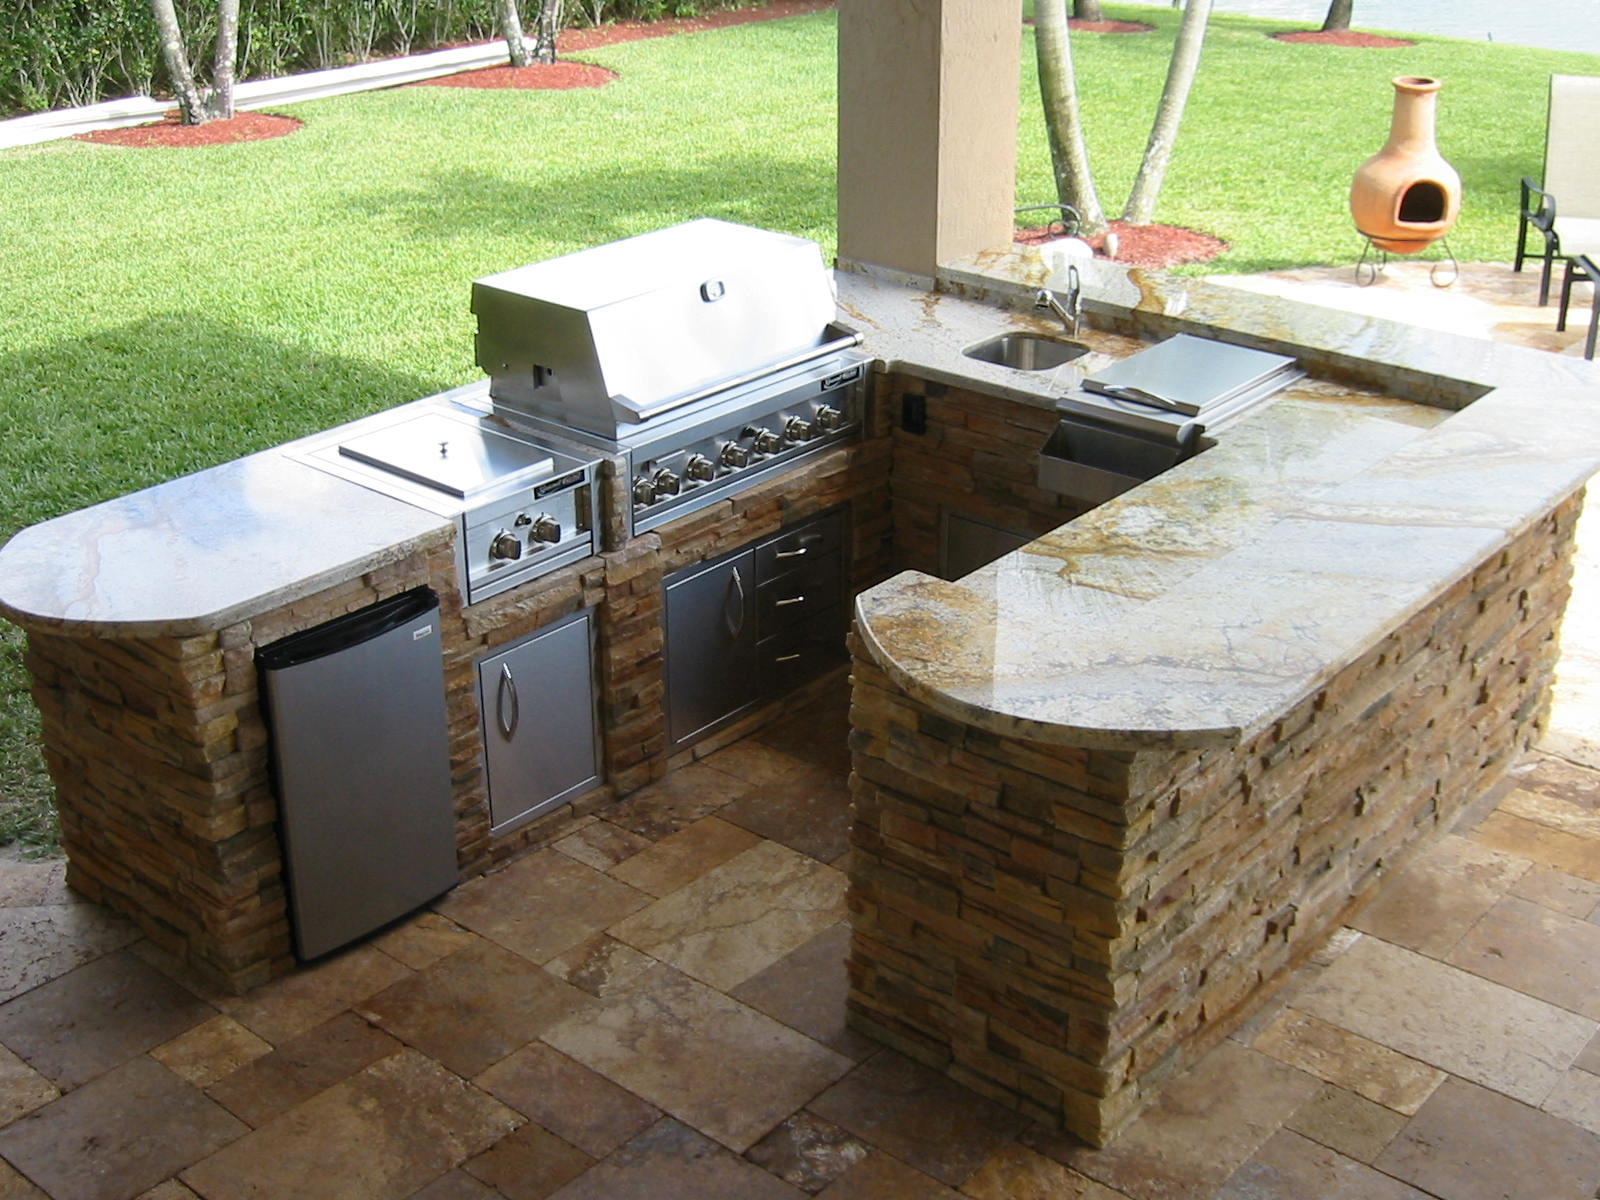 Outdoor kitchen depot outdoor kitchen building and design for Outdoor kitchen designs for small spaces